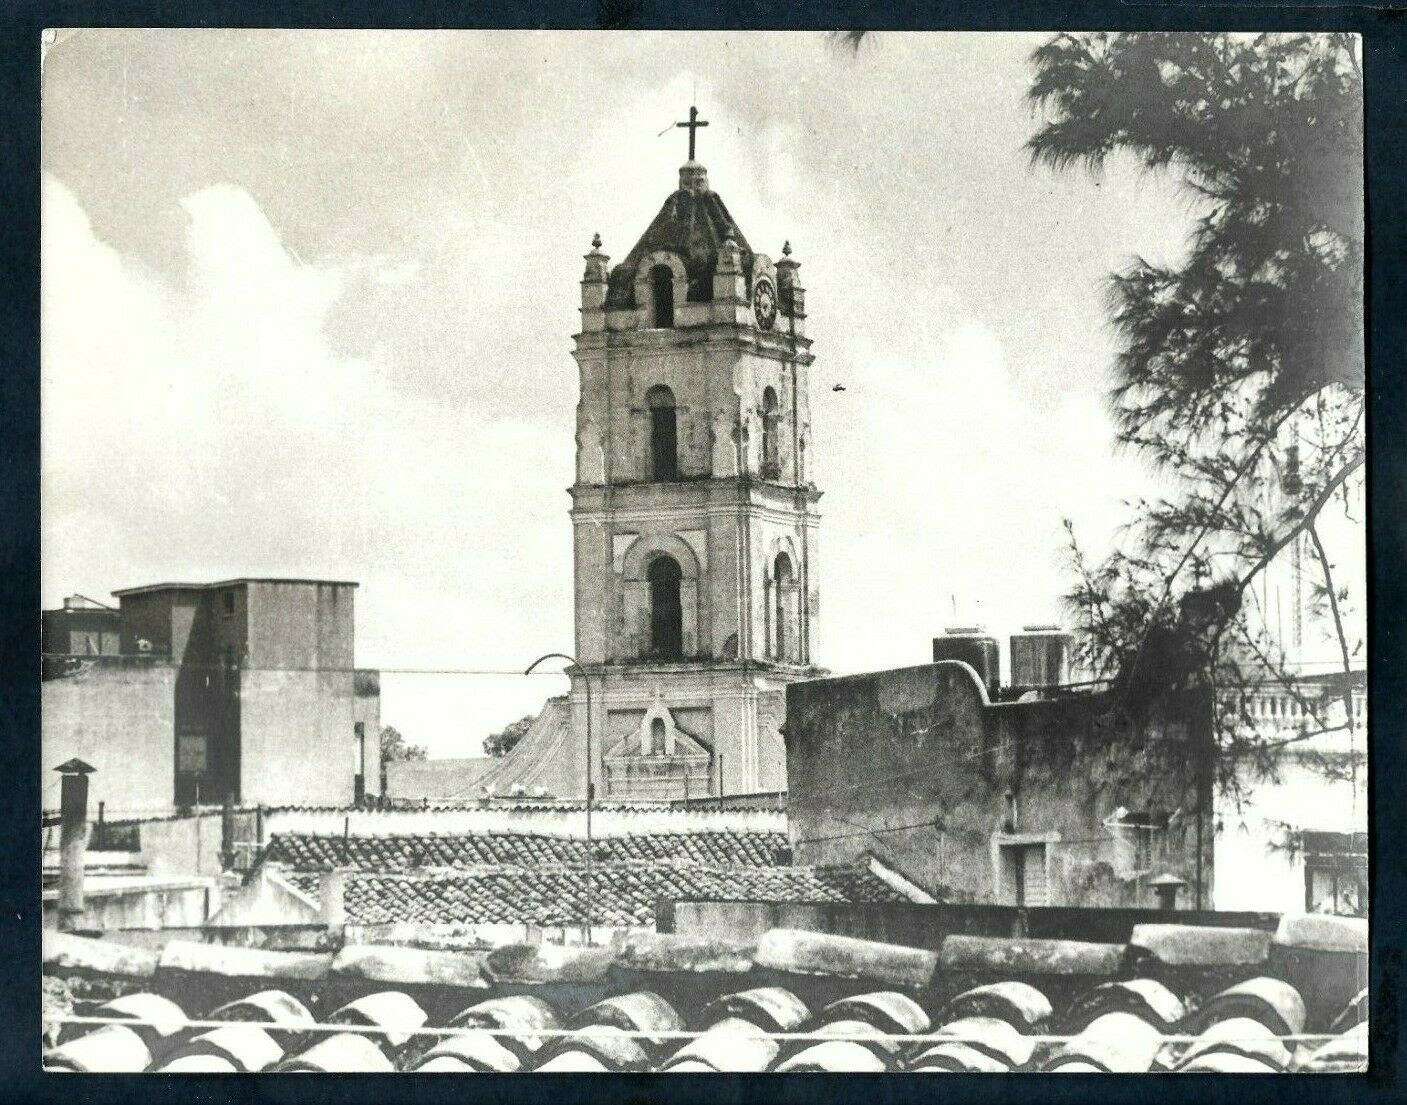 SPAIN COLONIAL HERITAGE CLOCK TOWER & TILE ROOFS CUBA 1960s VINTAGE Photo...